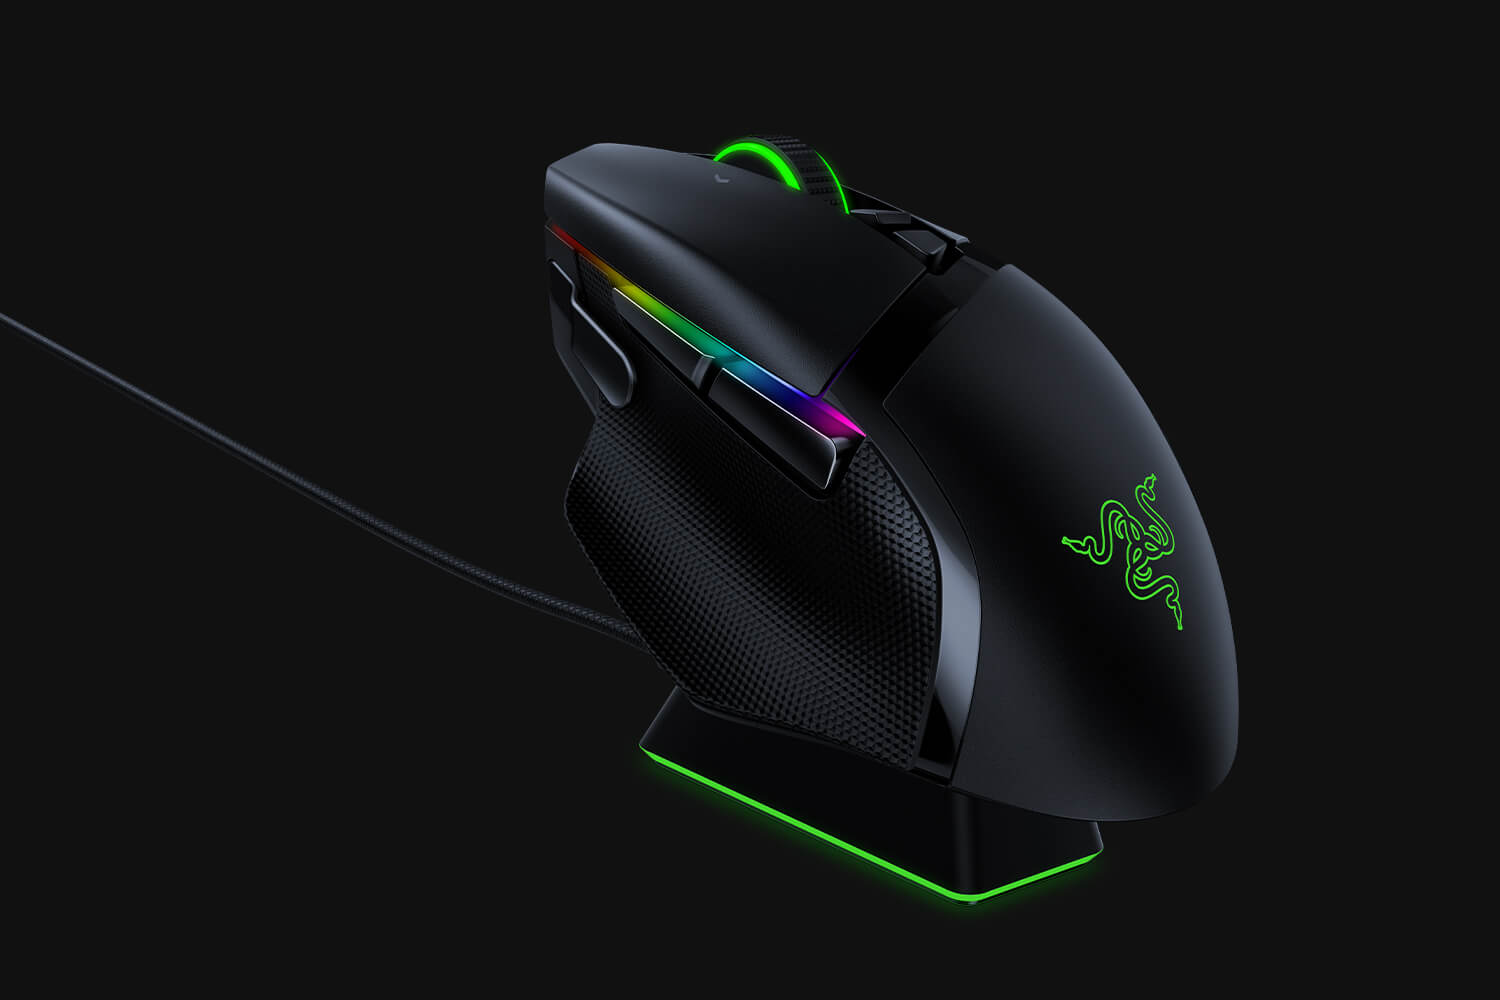 http://31.220.61.170/wp-content/uploads/2020/11/1604201538_566_Razer-Basilisk-Ultimate-HyperSpeed-Wireless-Gaming-Mouse-Review.png